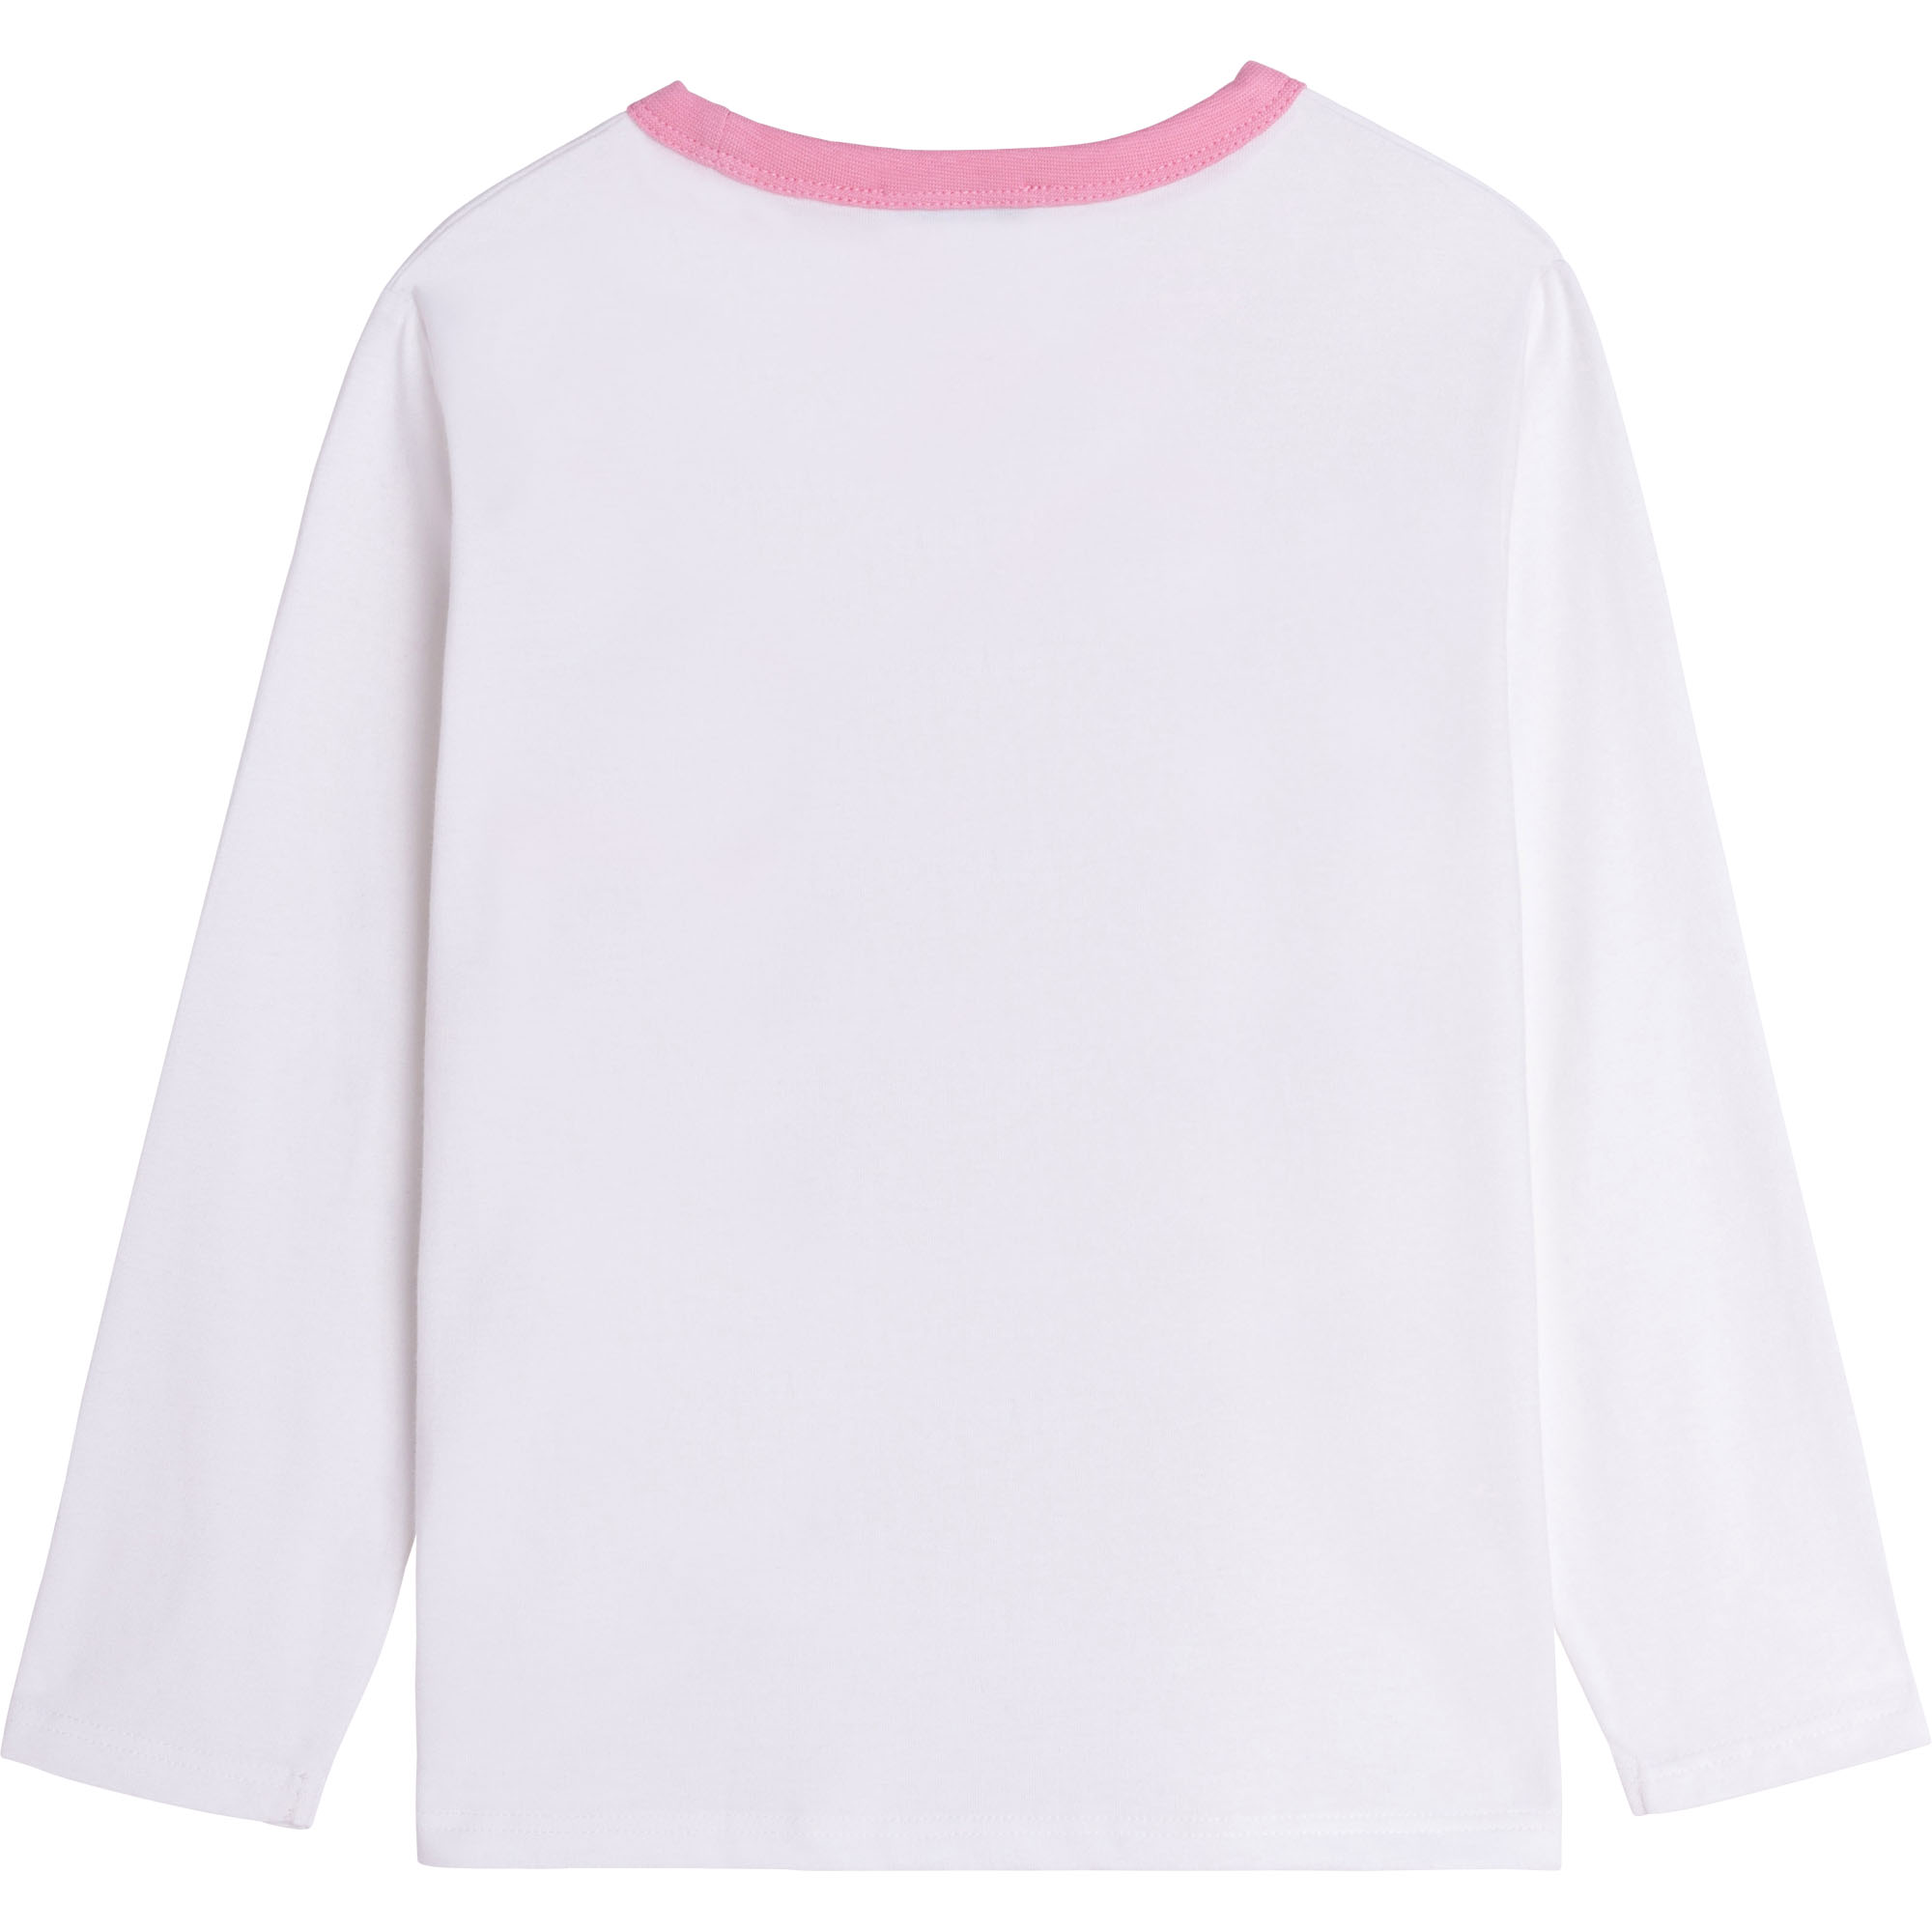 LONG SLEEVE T-SHIRT THE MARC JACOBS for GIRL